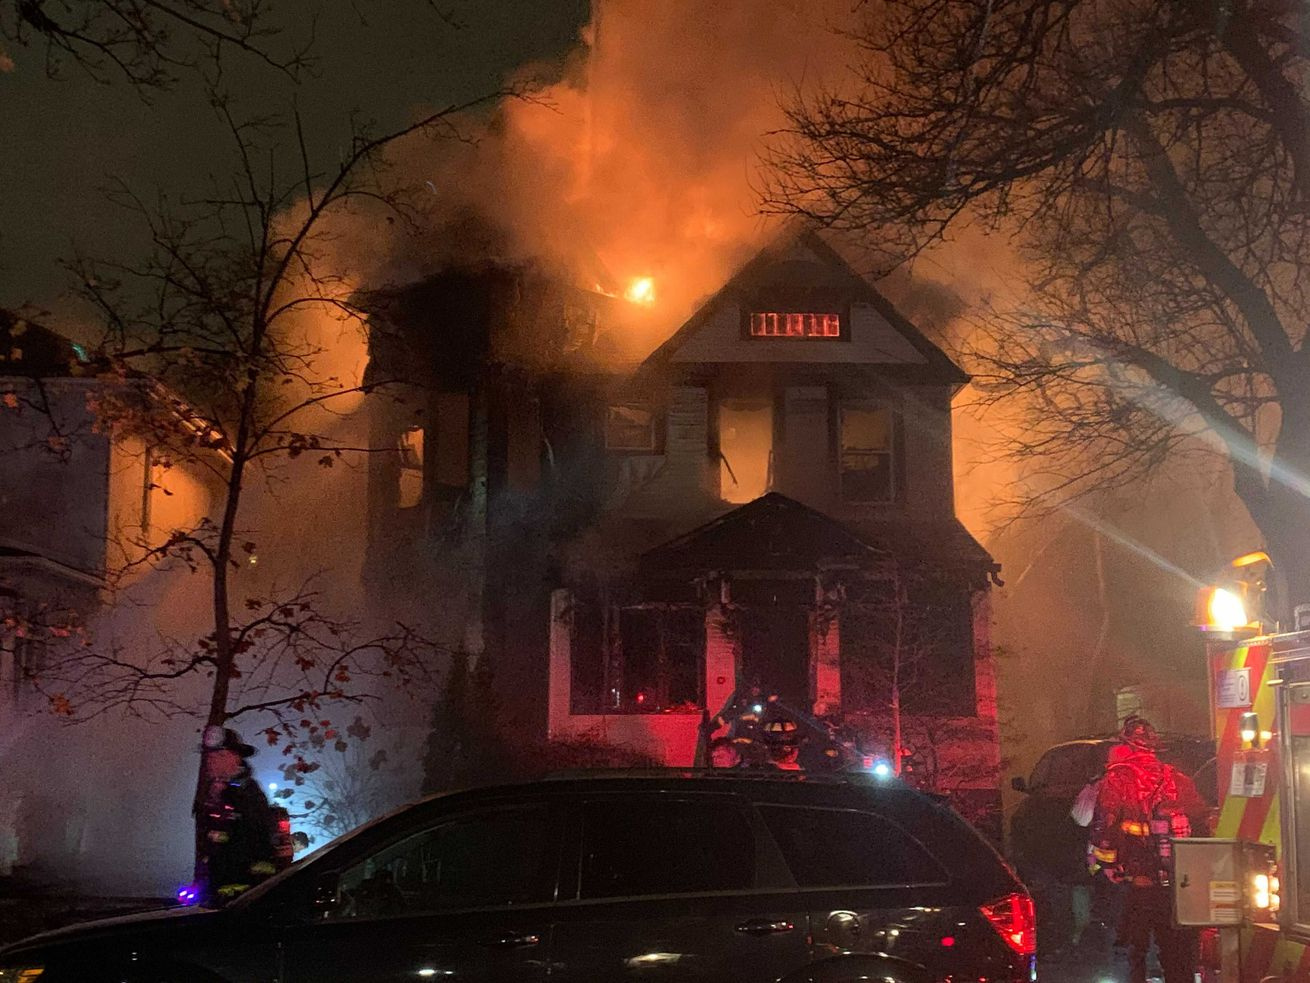 Two senior citizens die in house fire in Old Irving Park neighborhood